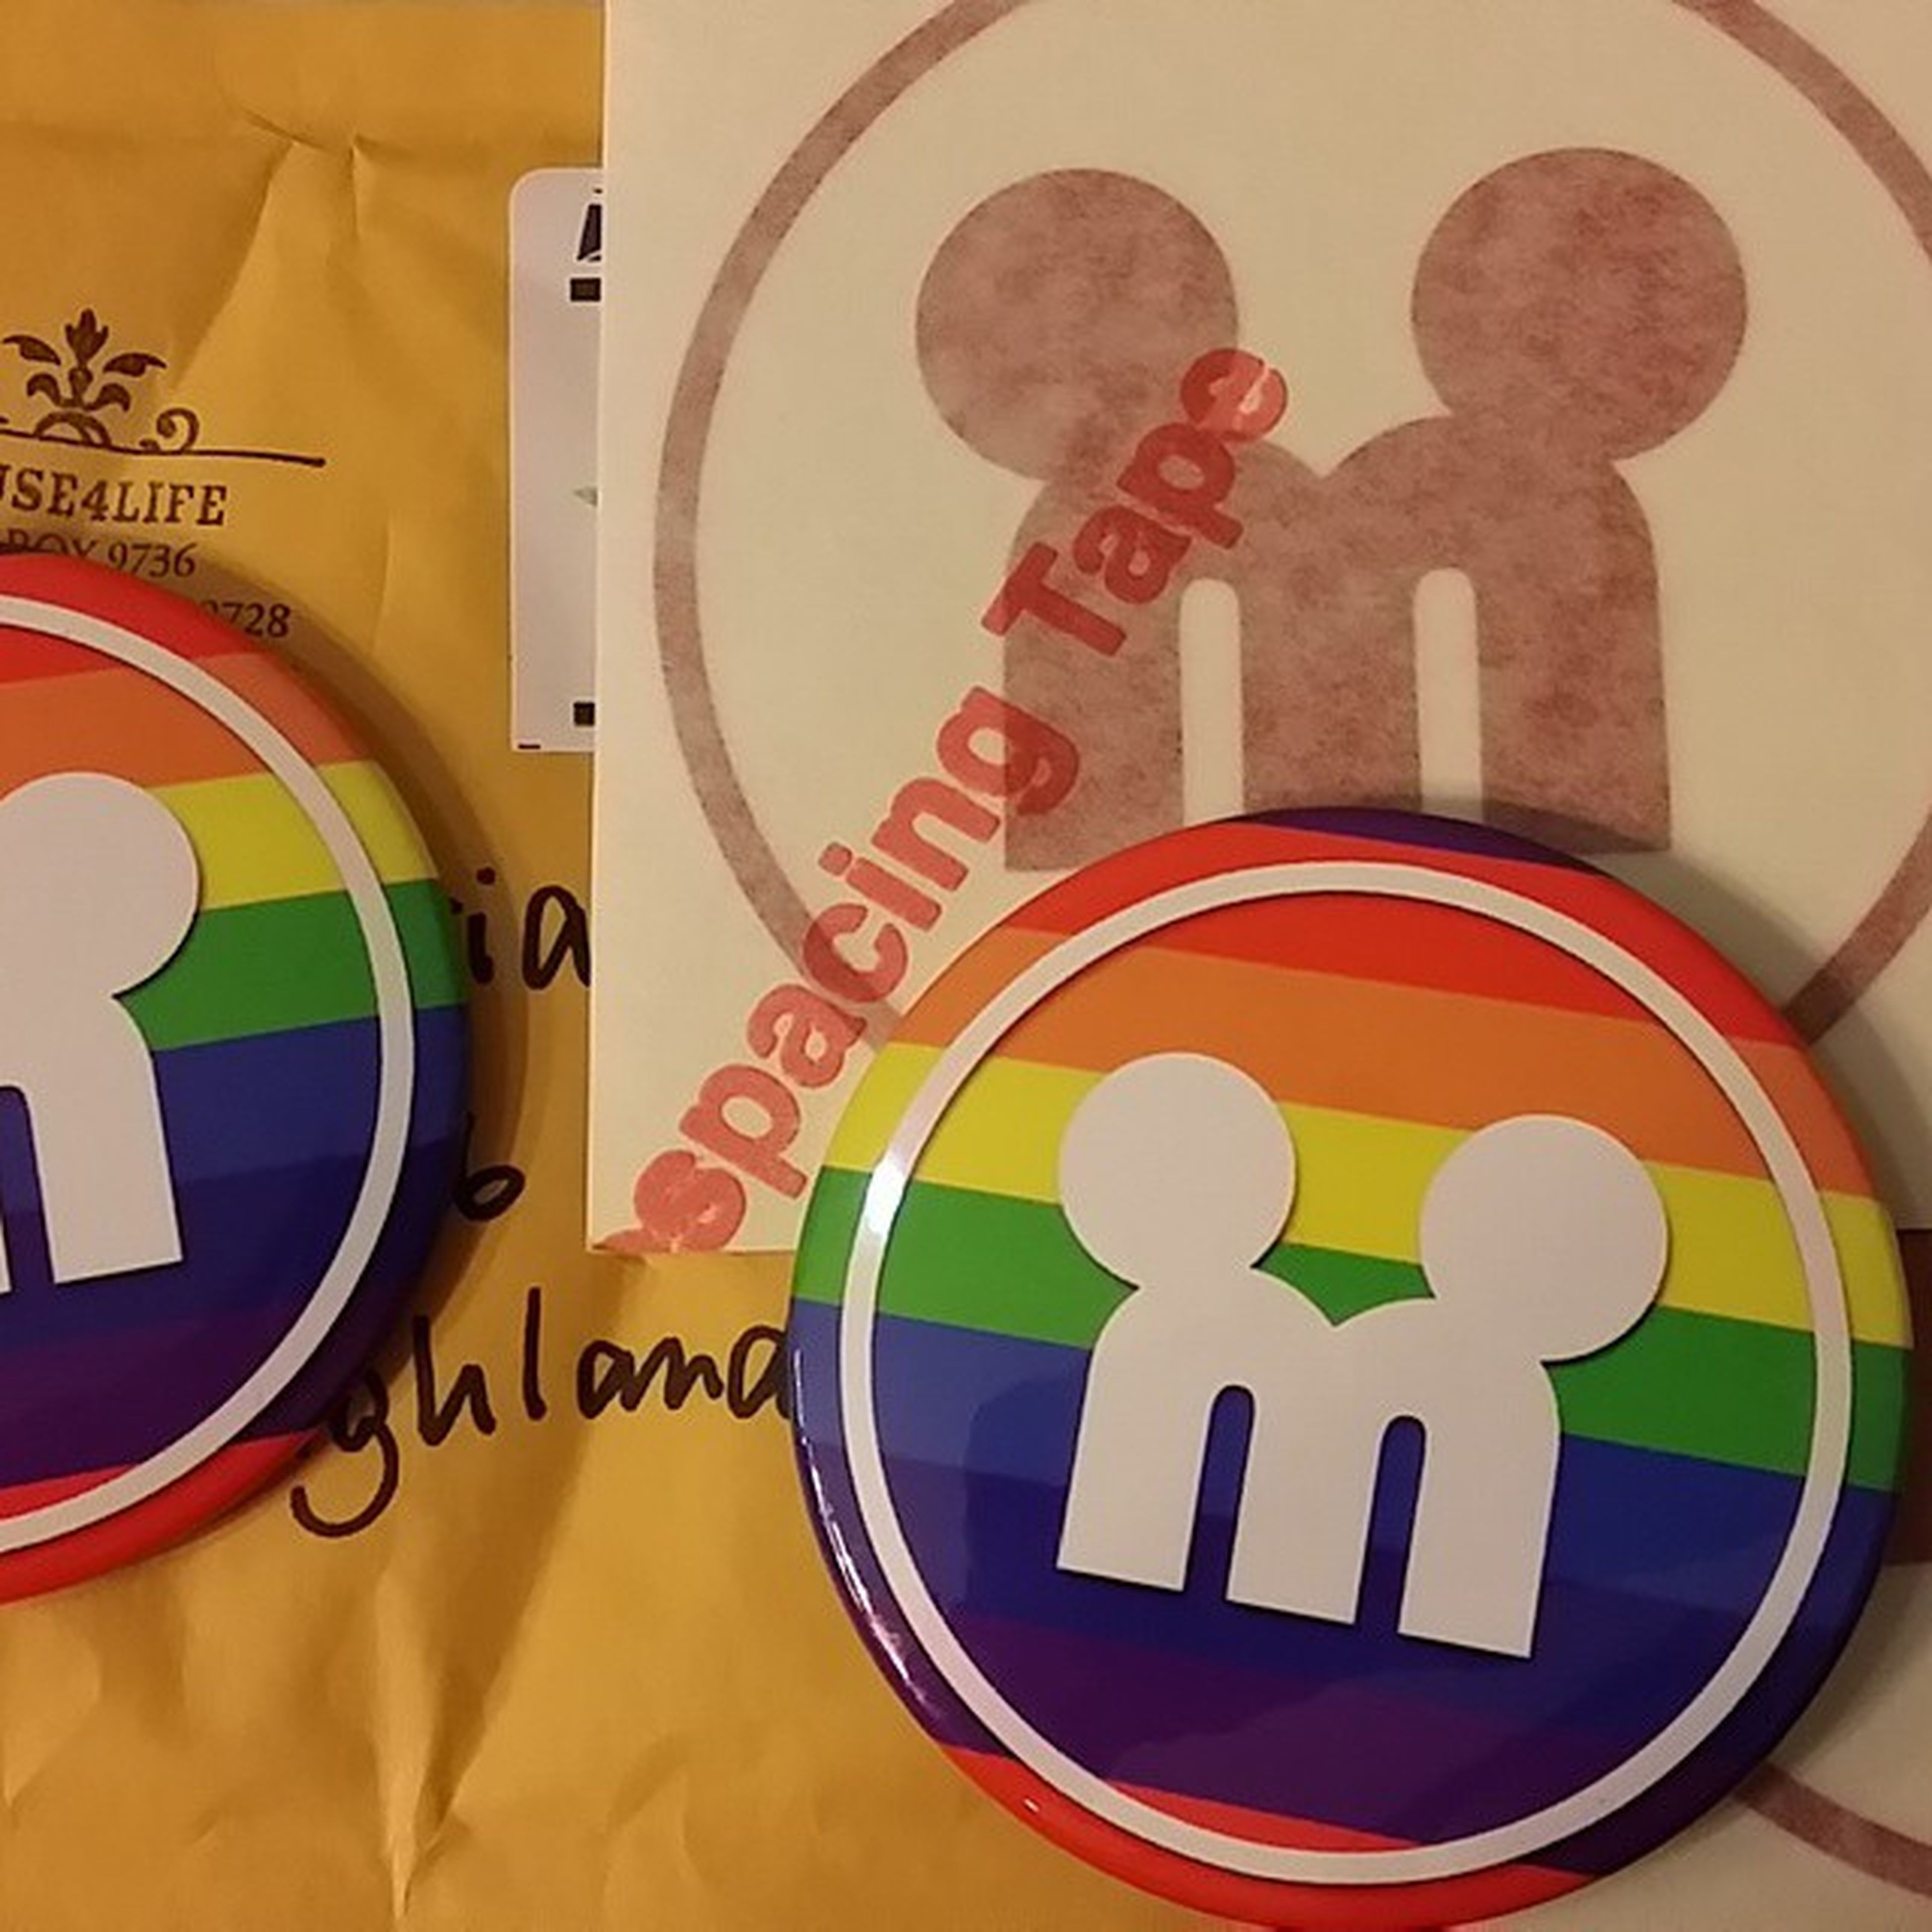 YESSSSSSSS my M4L stuff came in today!!!